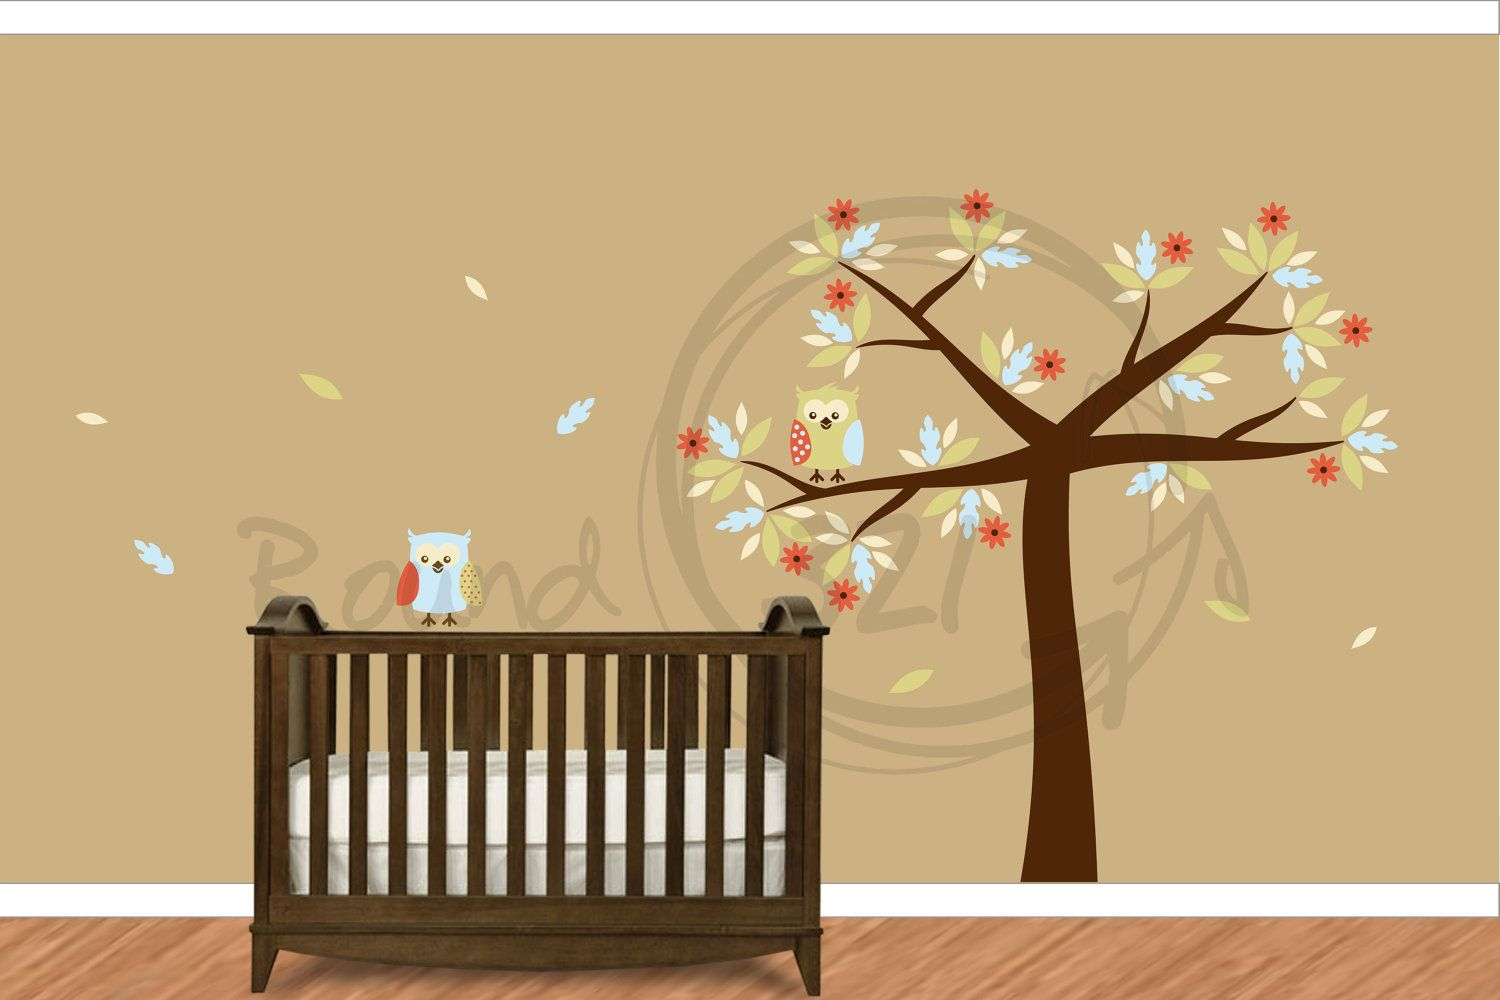 Awesome Etsy Baby Wall Decor Illustration - Art & Wall Decor ...